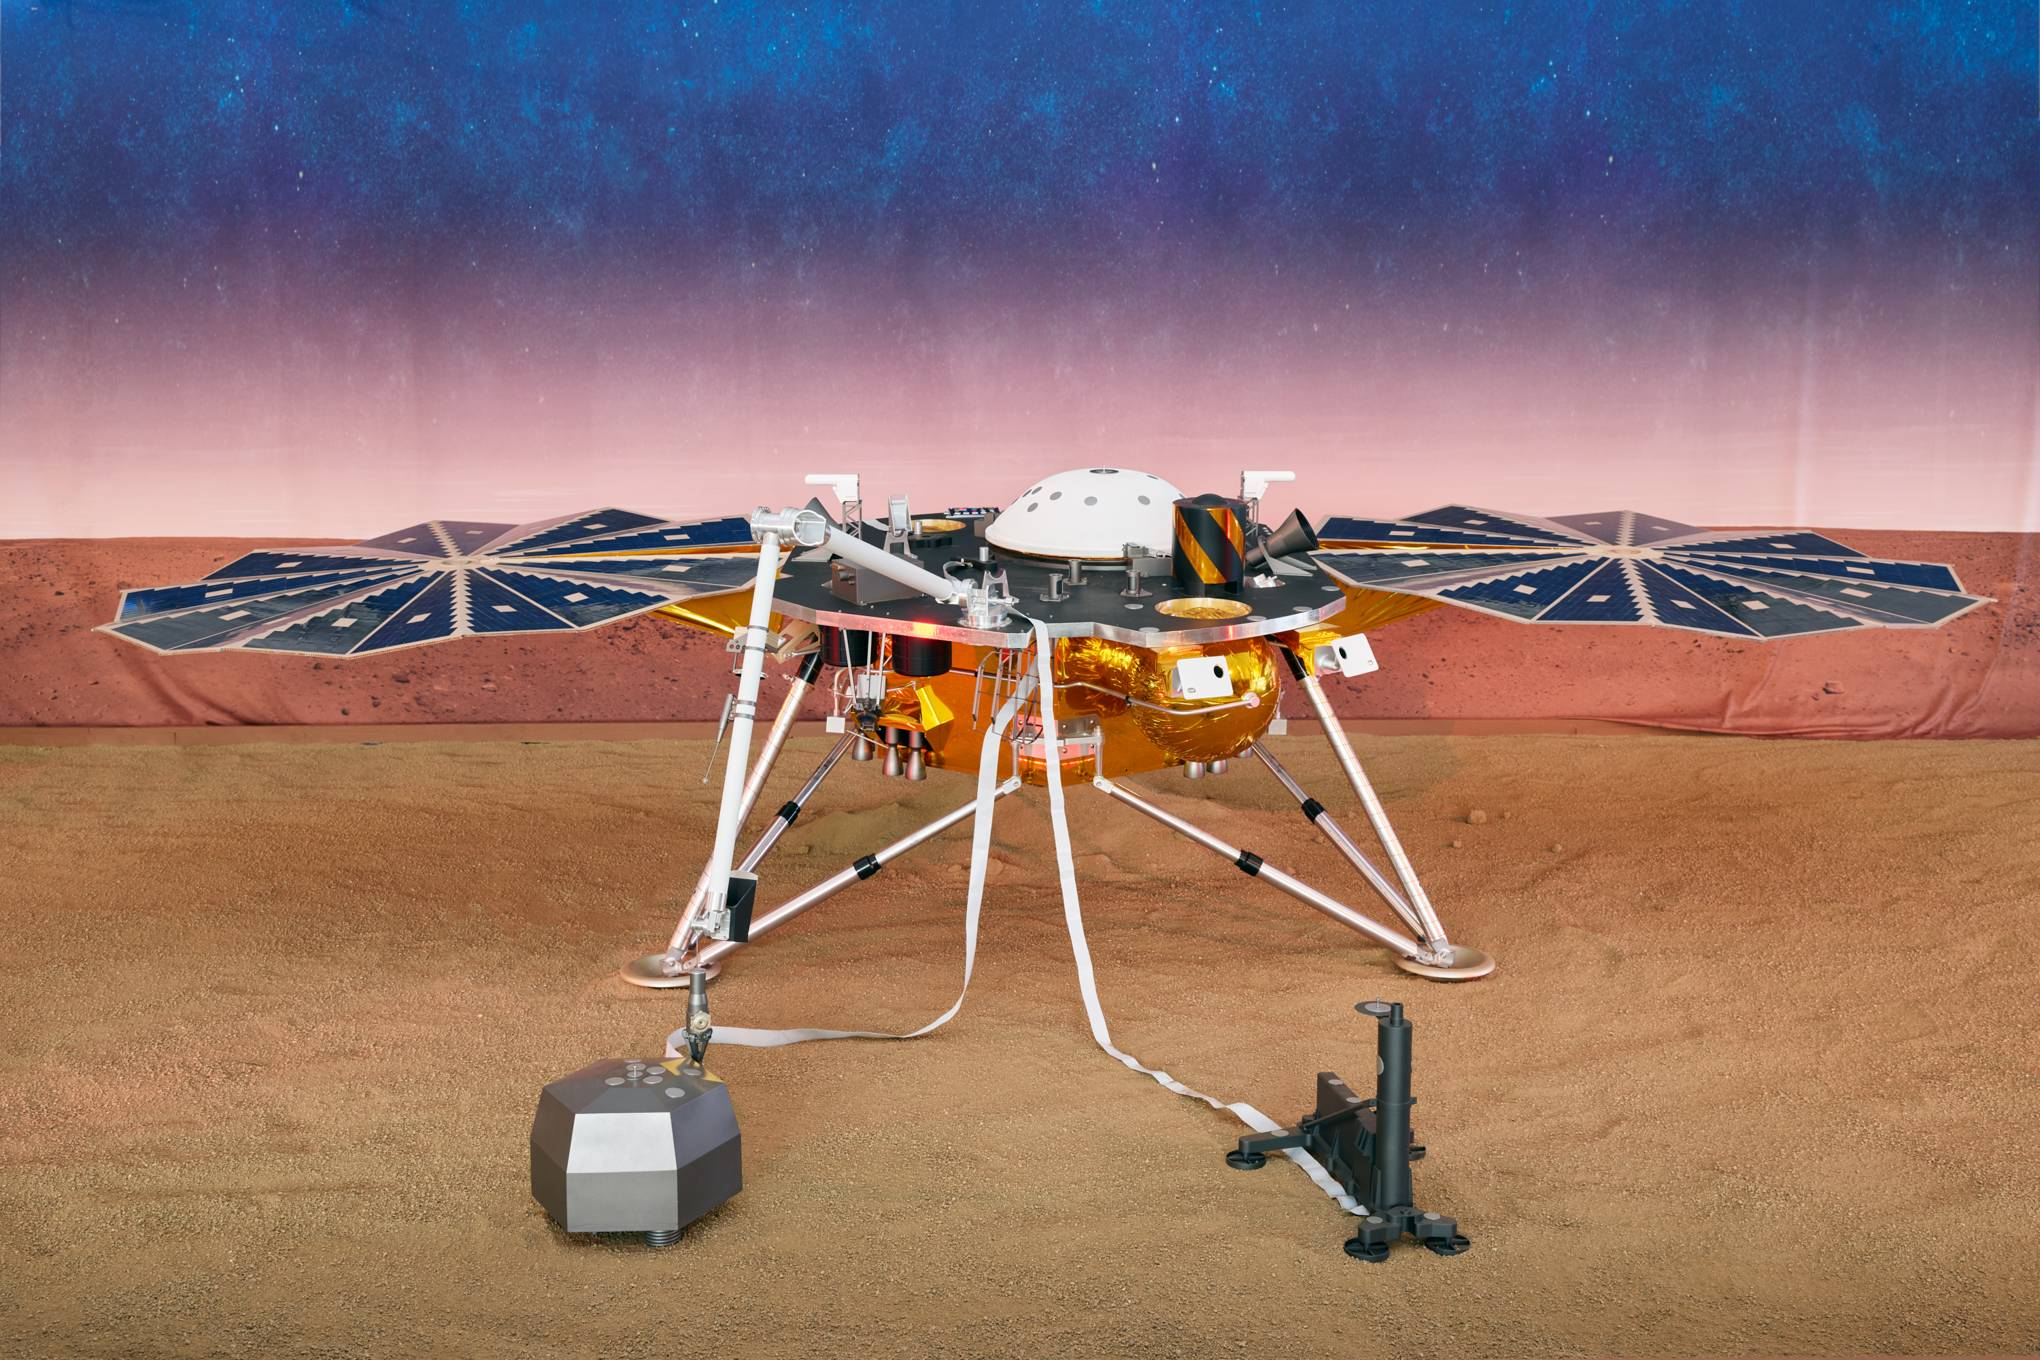 Wednesday briefing: Nasa InSight has detected its first marsquake